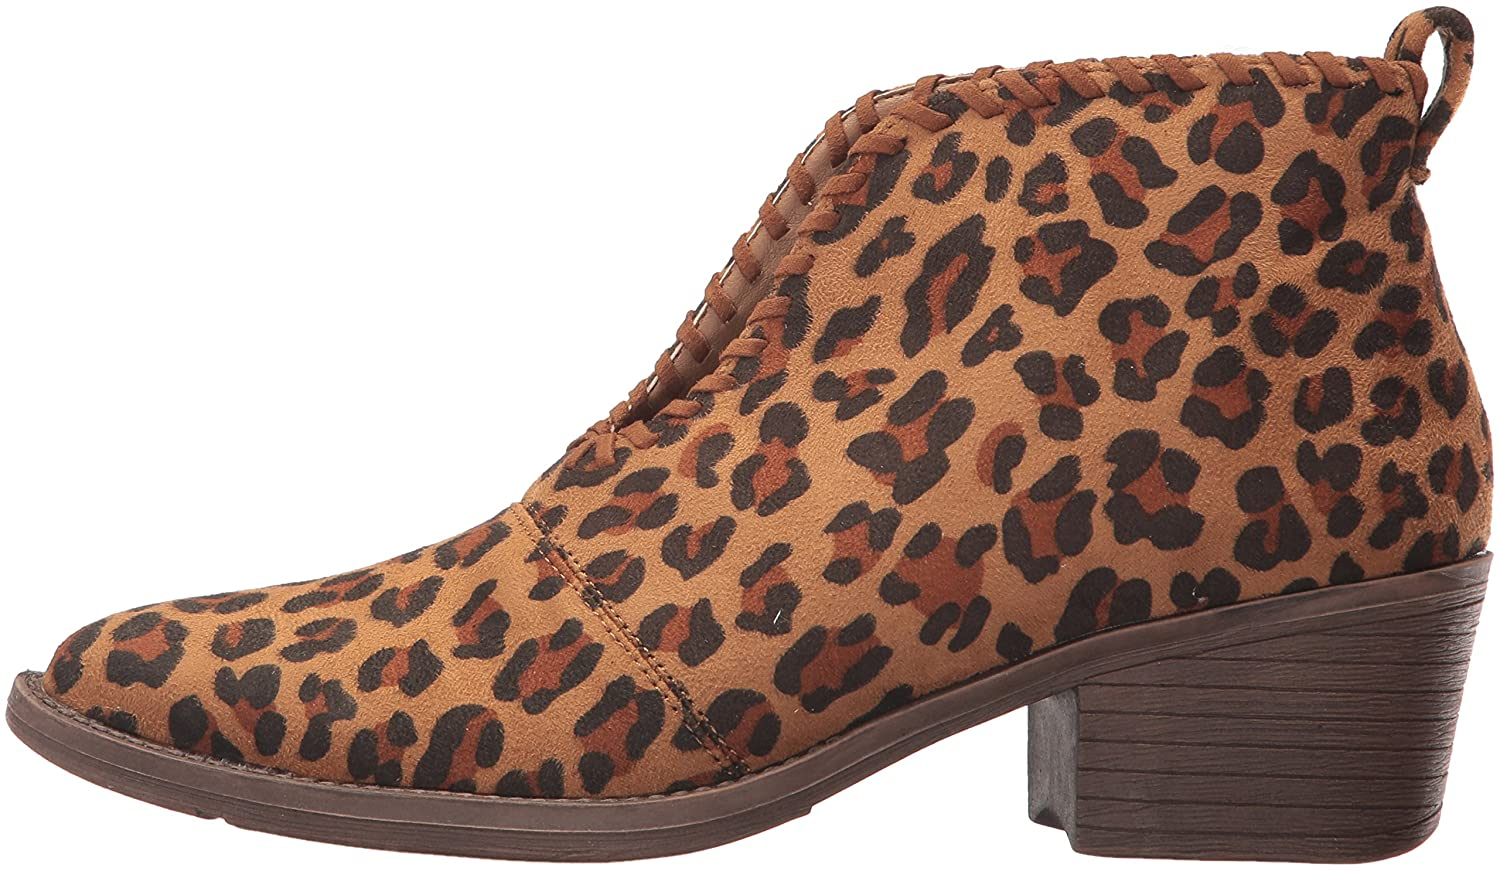 Volatile Women's Cavalry Ankle US|Tan Boot B071L2BVMP 9 B(M) US|Tan Ankle Leopard 0ac521